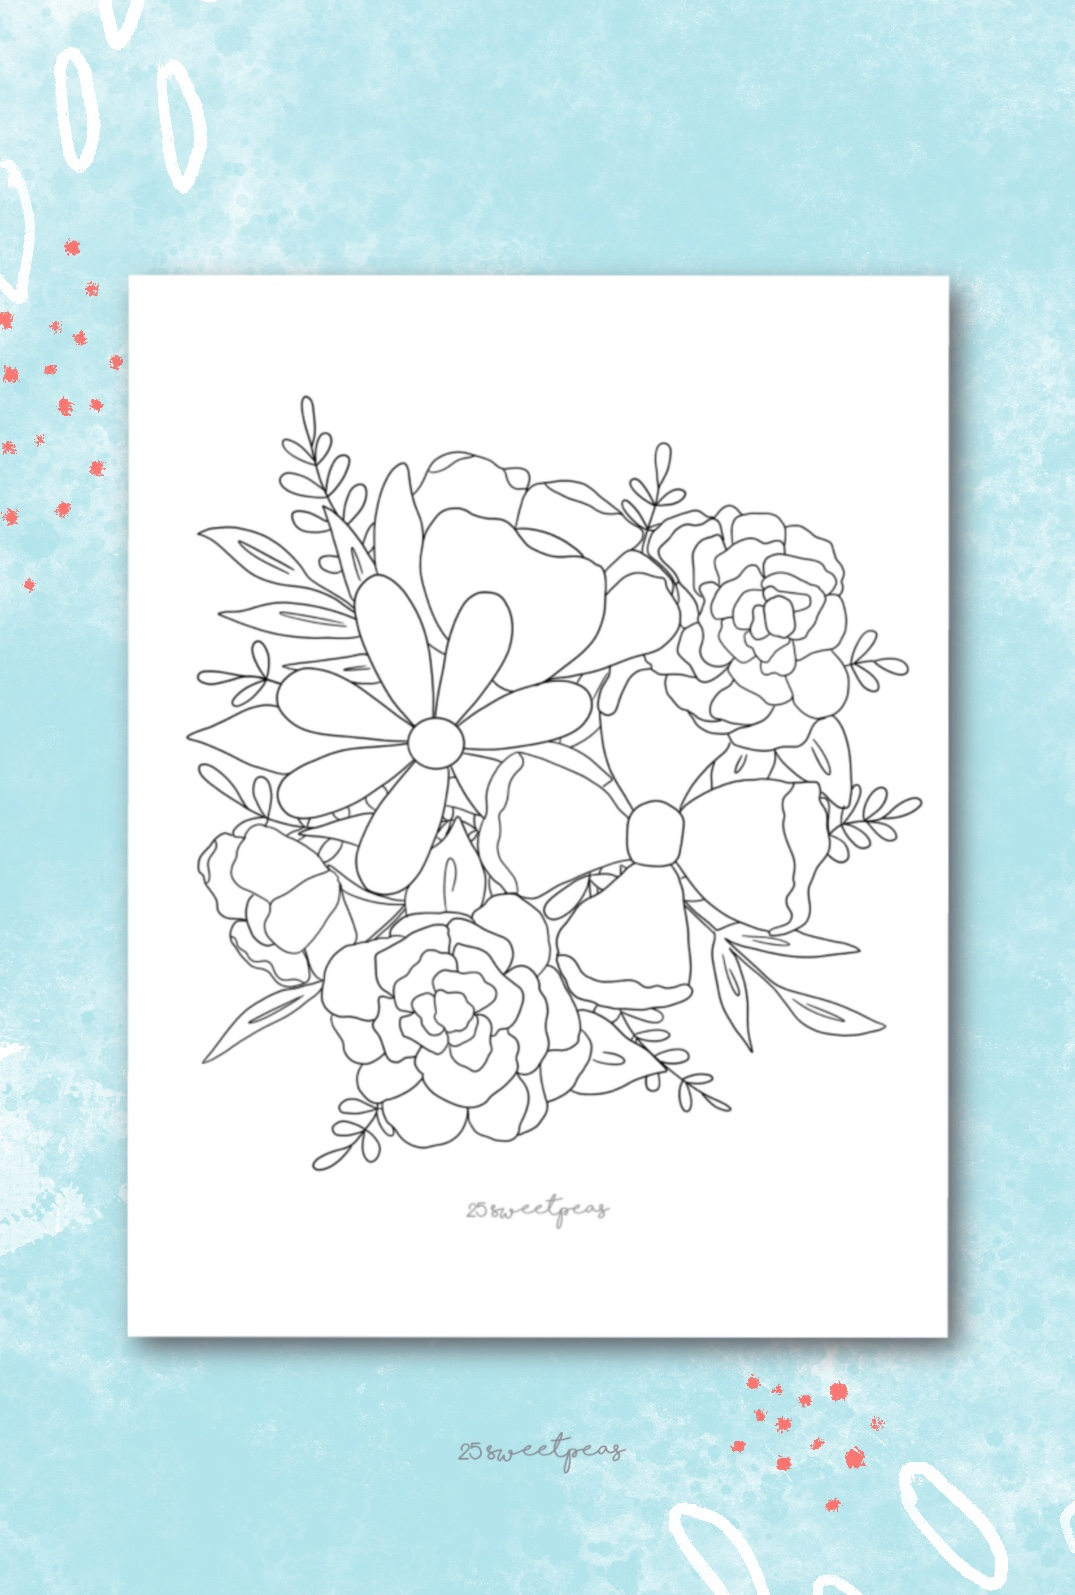 25 Sweetpeas Coloring Page